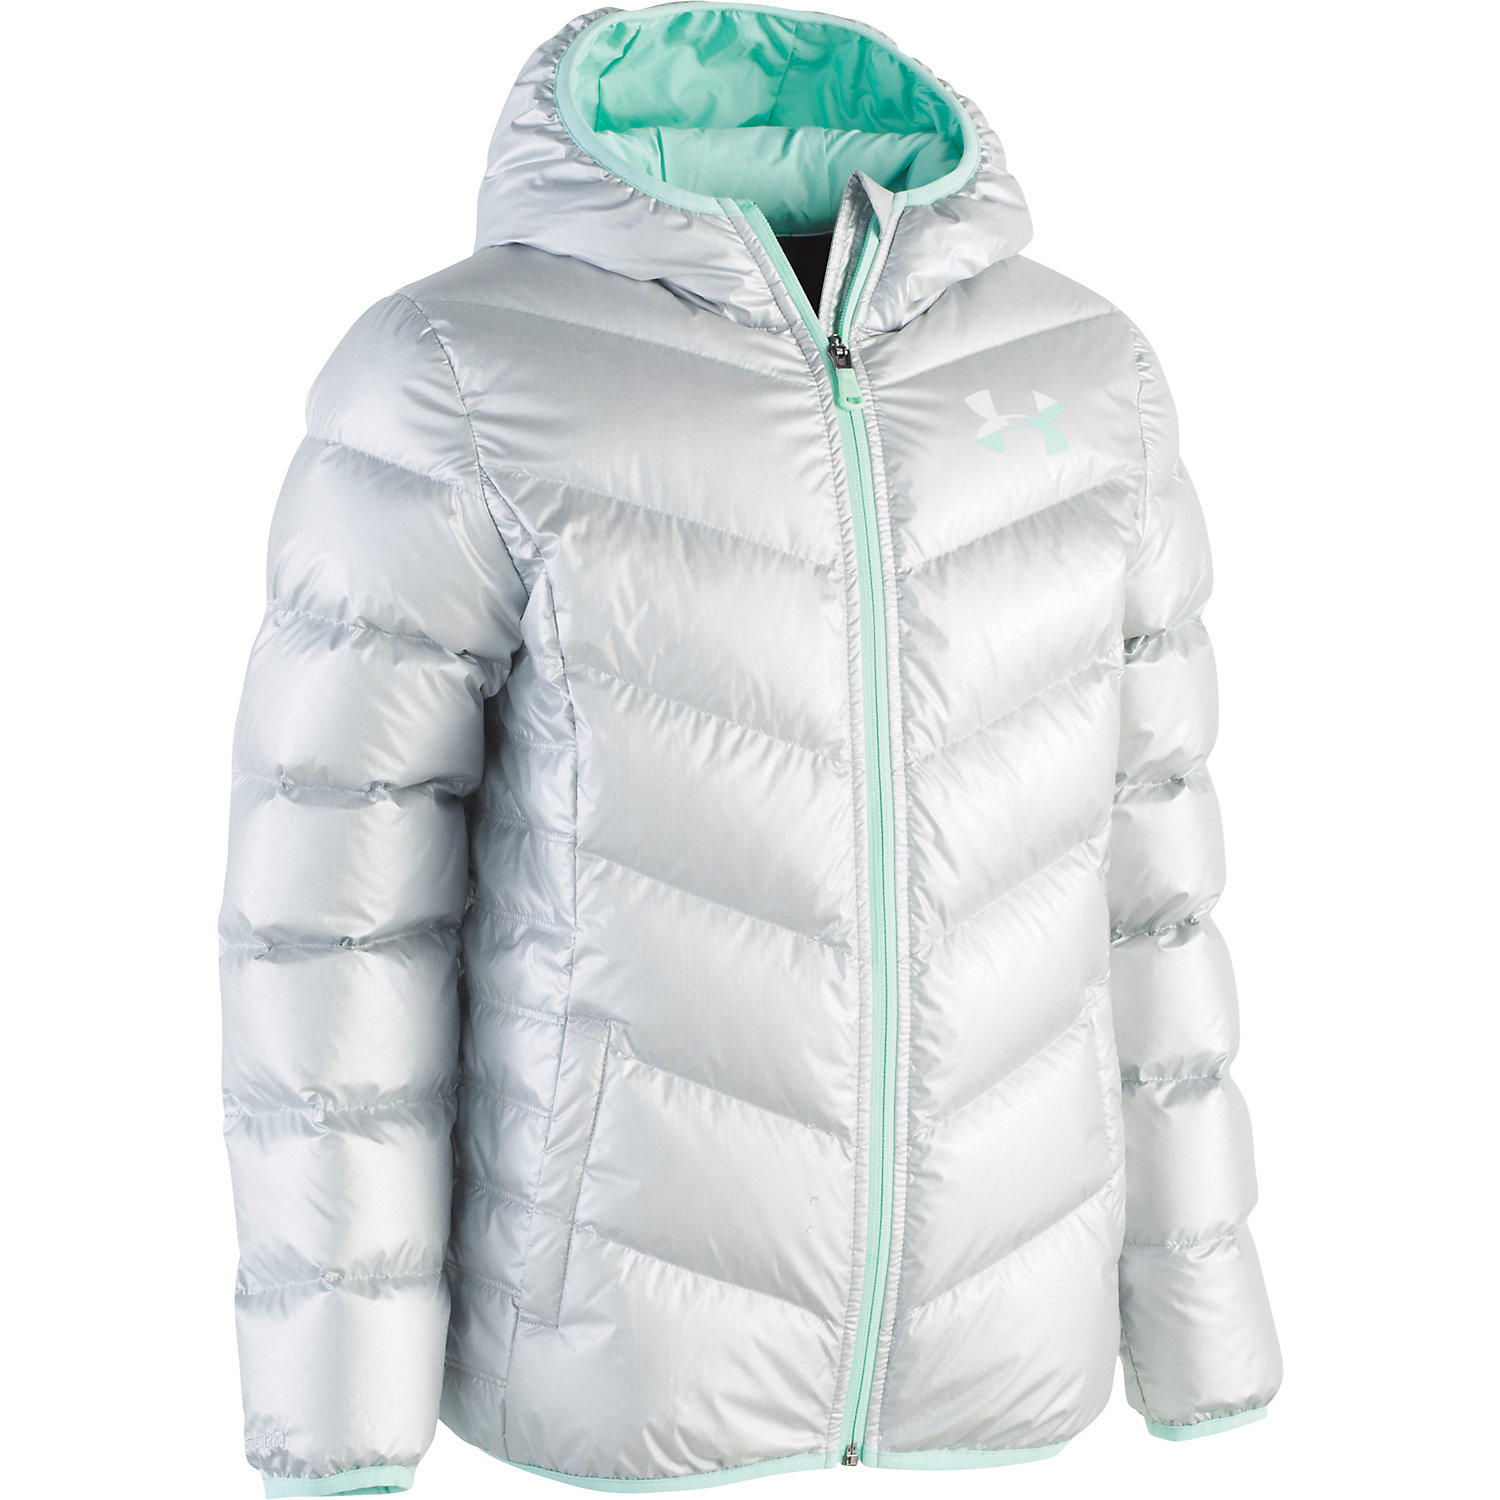 esposa Rebobinar Maravilloso  Under Armour Girls' Meta Mallowpuff Down Jacket - Moosejaw